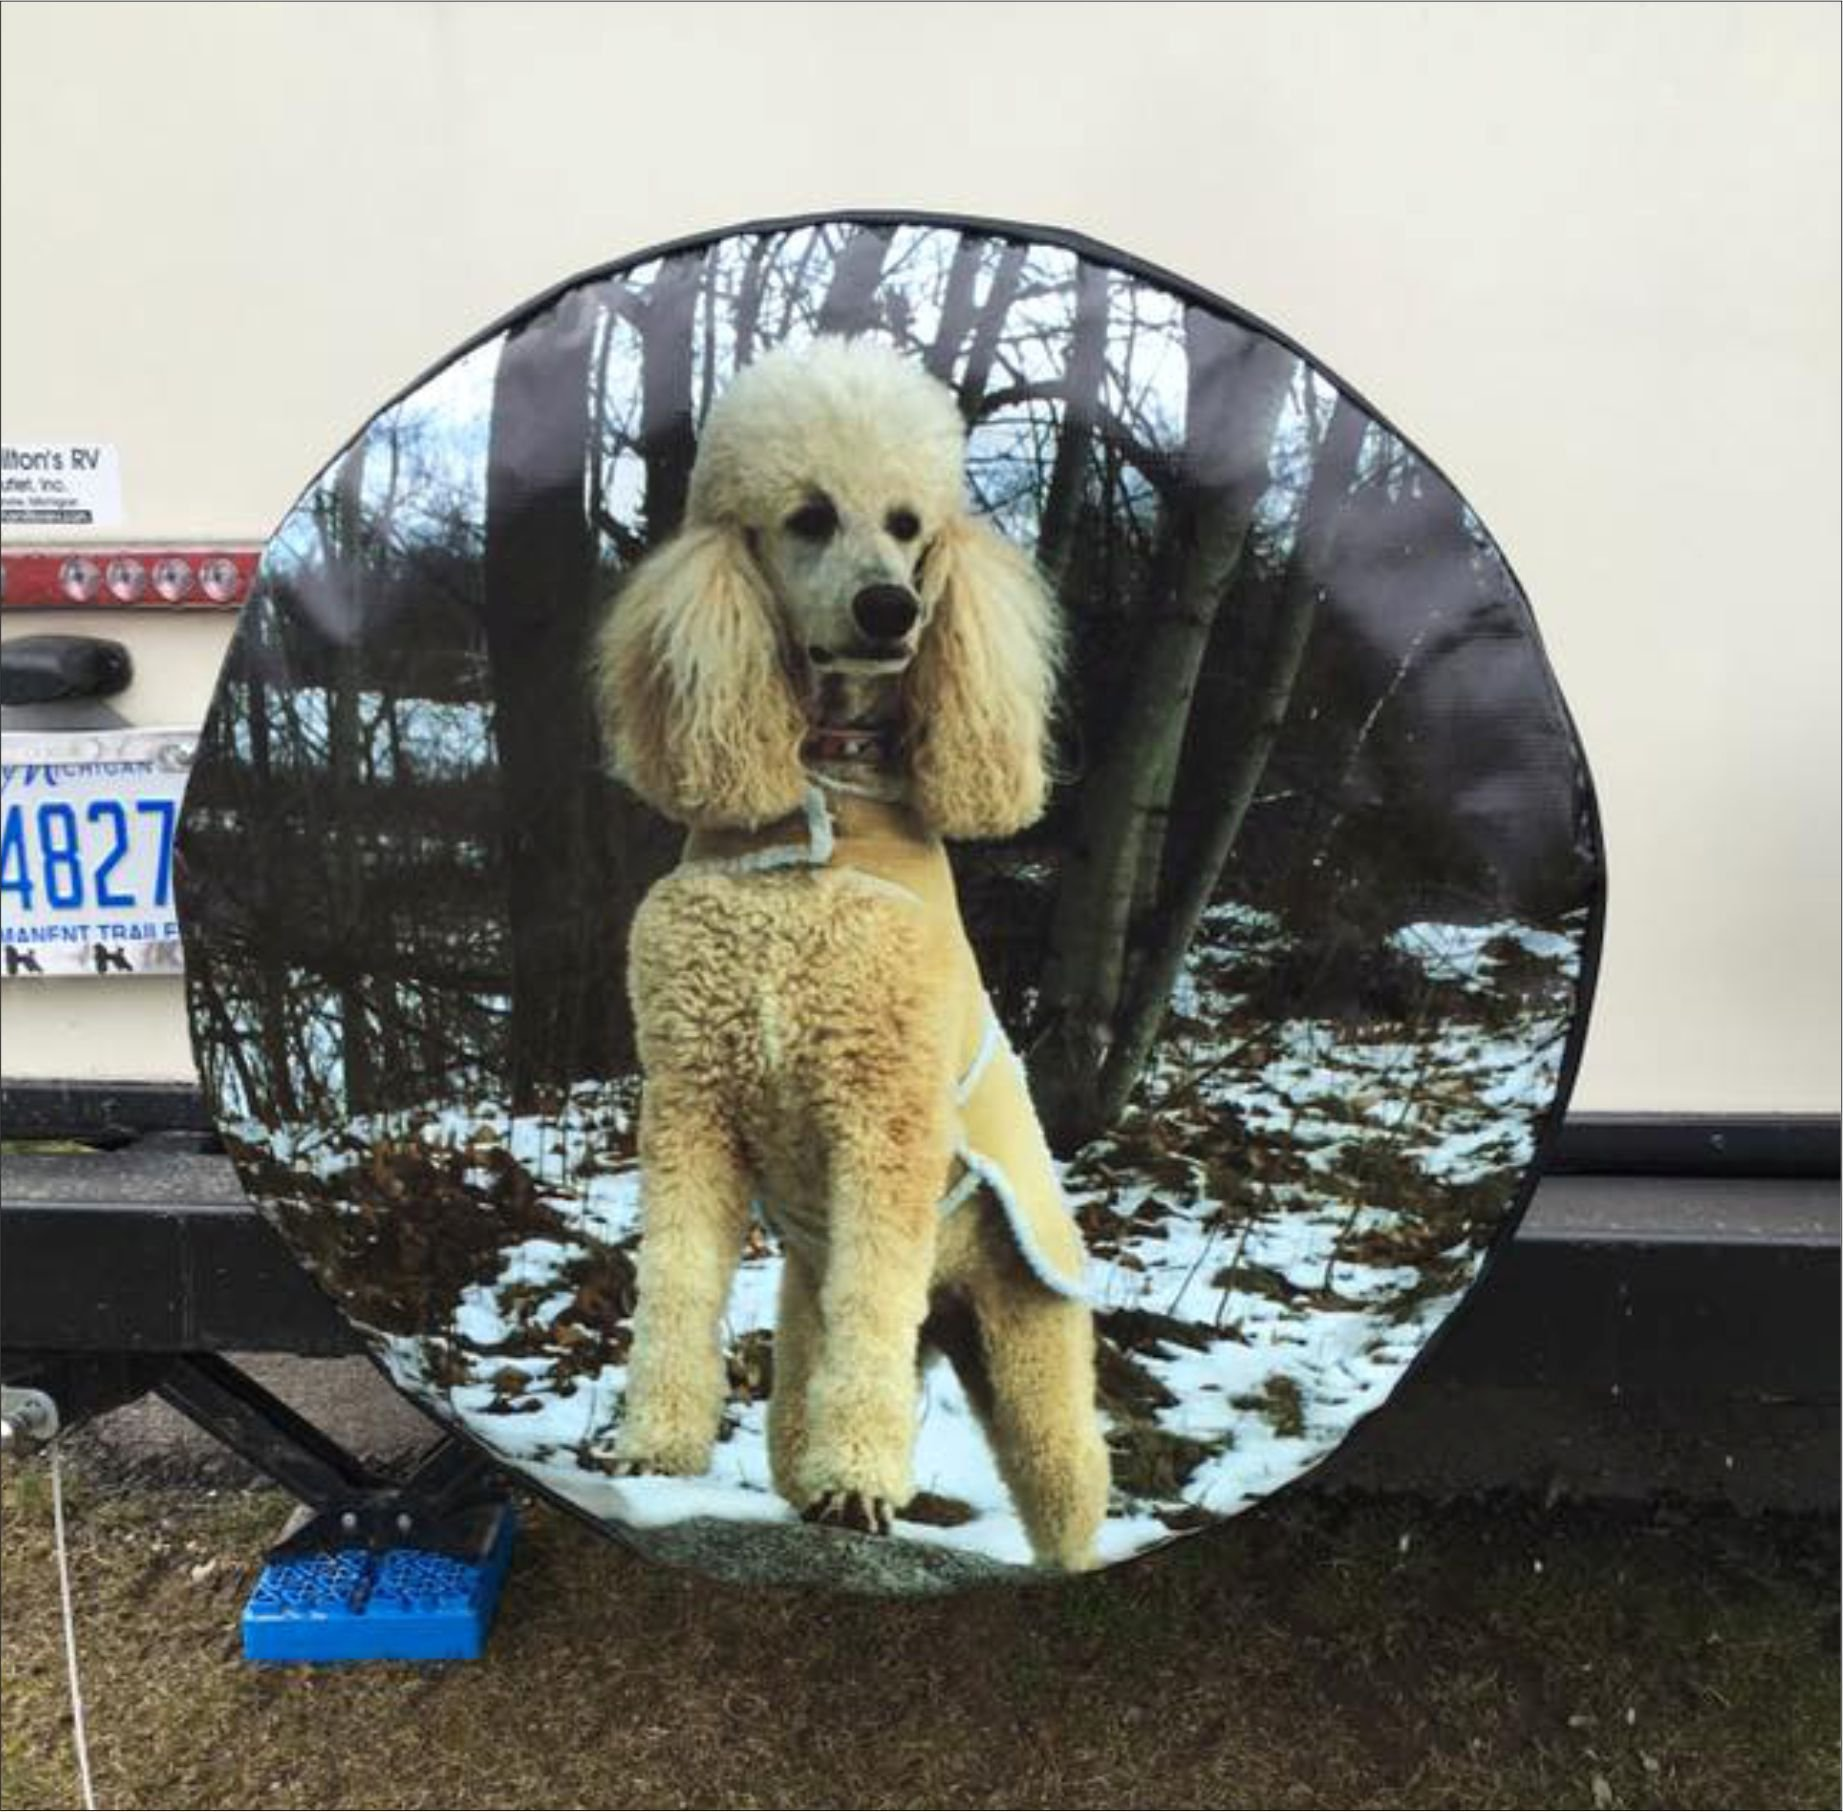 Custom Spare Tire Cover for Jeep RV Camper VW Trailer etc(Select popular sizes from drop down menu or contact us-ALL SIZES AVAILABLE)Tire Cover Central by Tire Cover Central (Image #7)